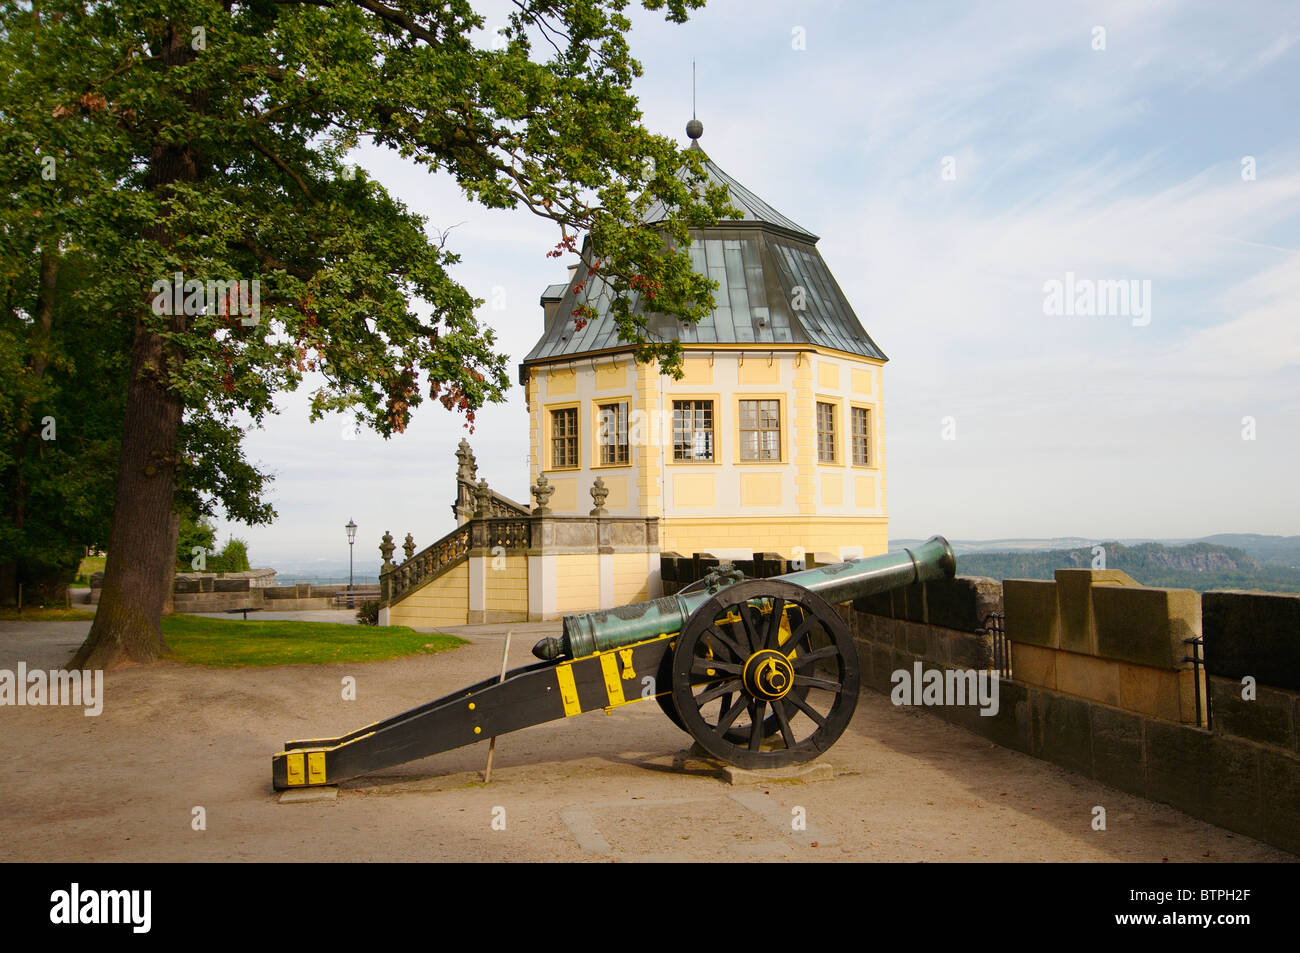 Germany, Saxony, Festung Königstein, Canon in fort - Stock Image